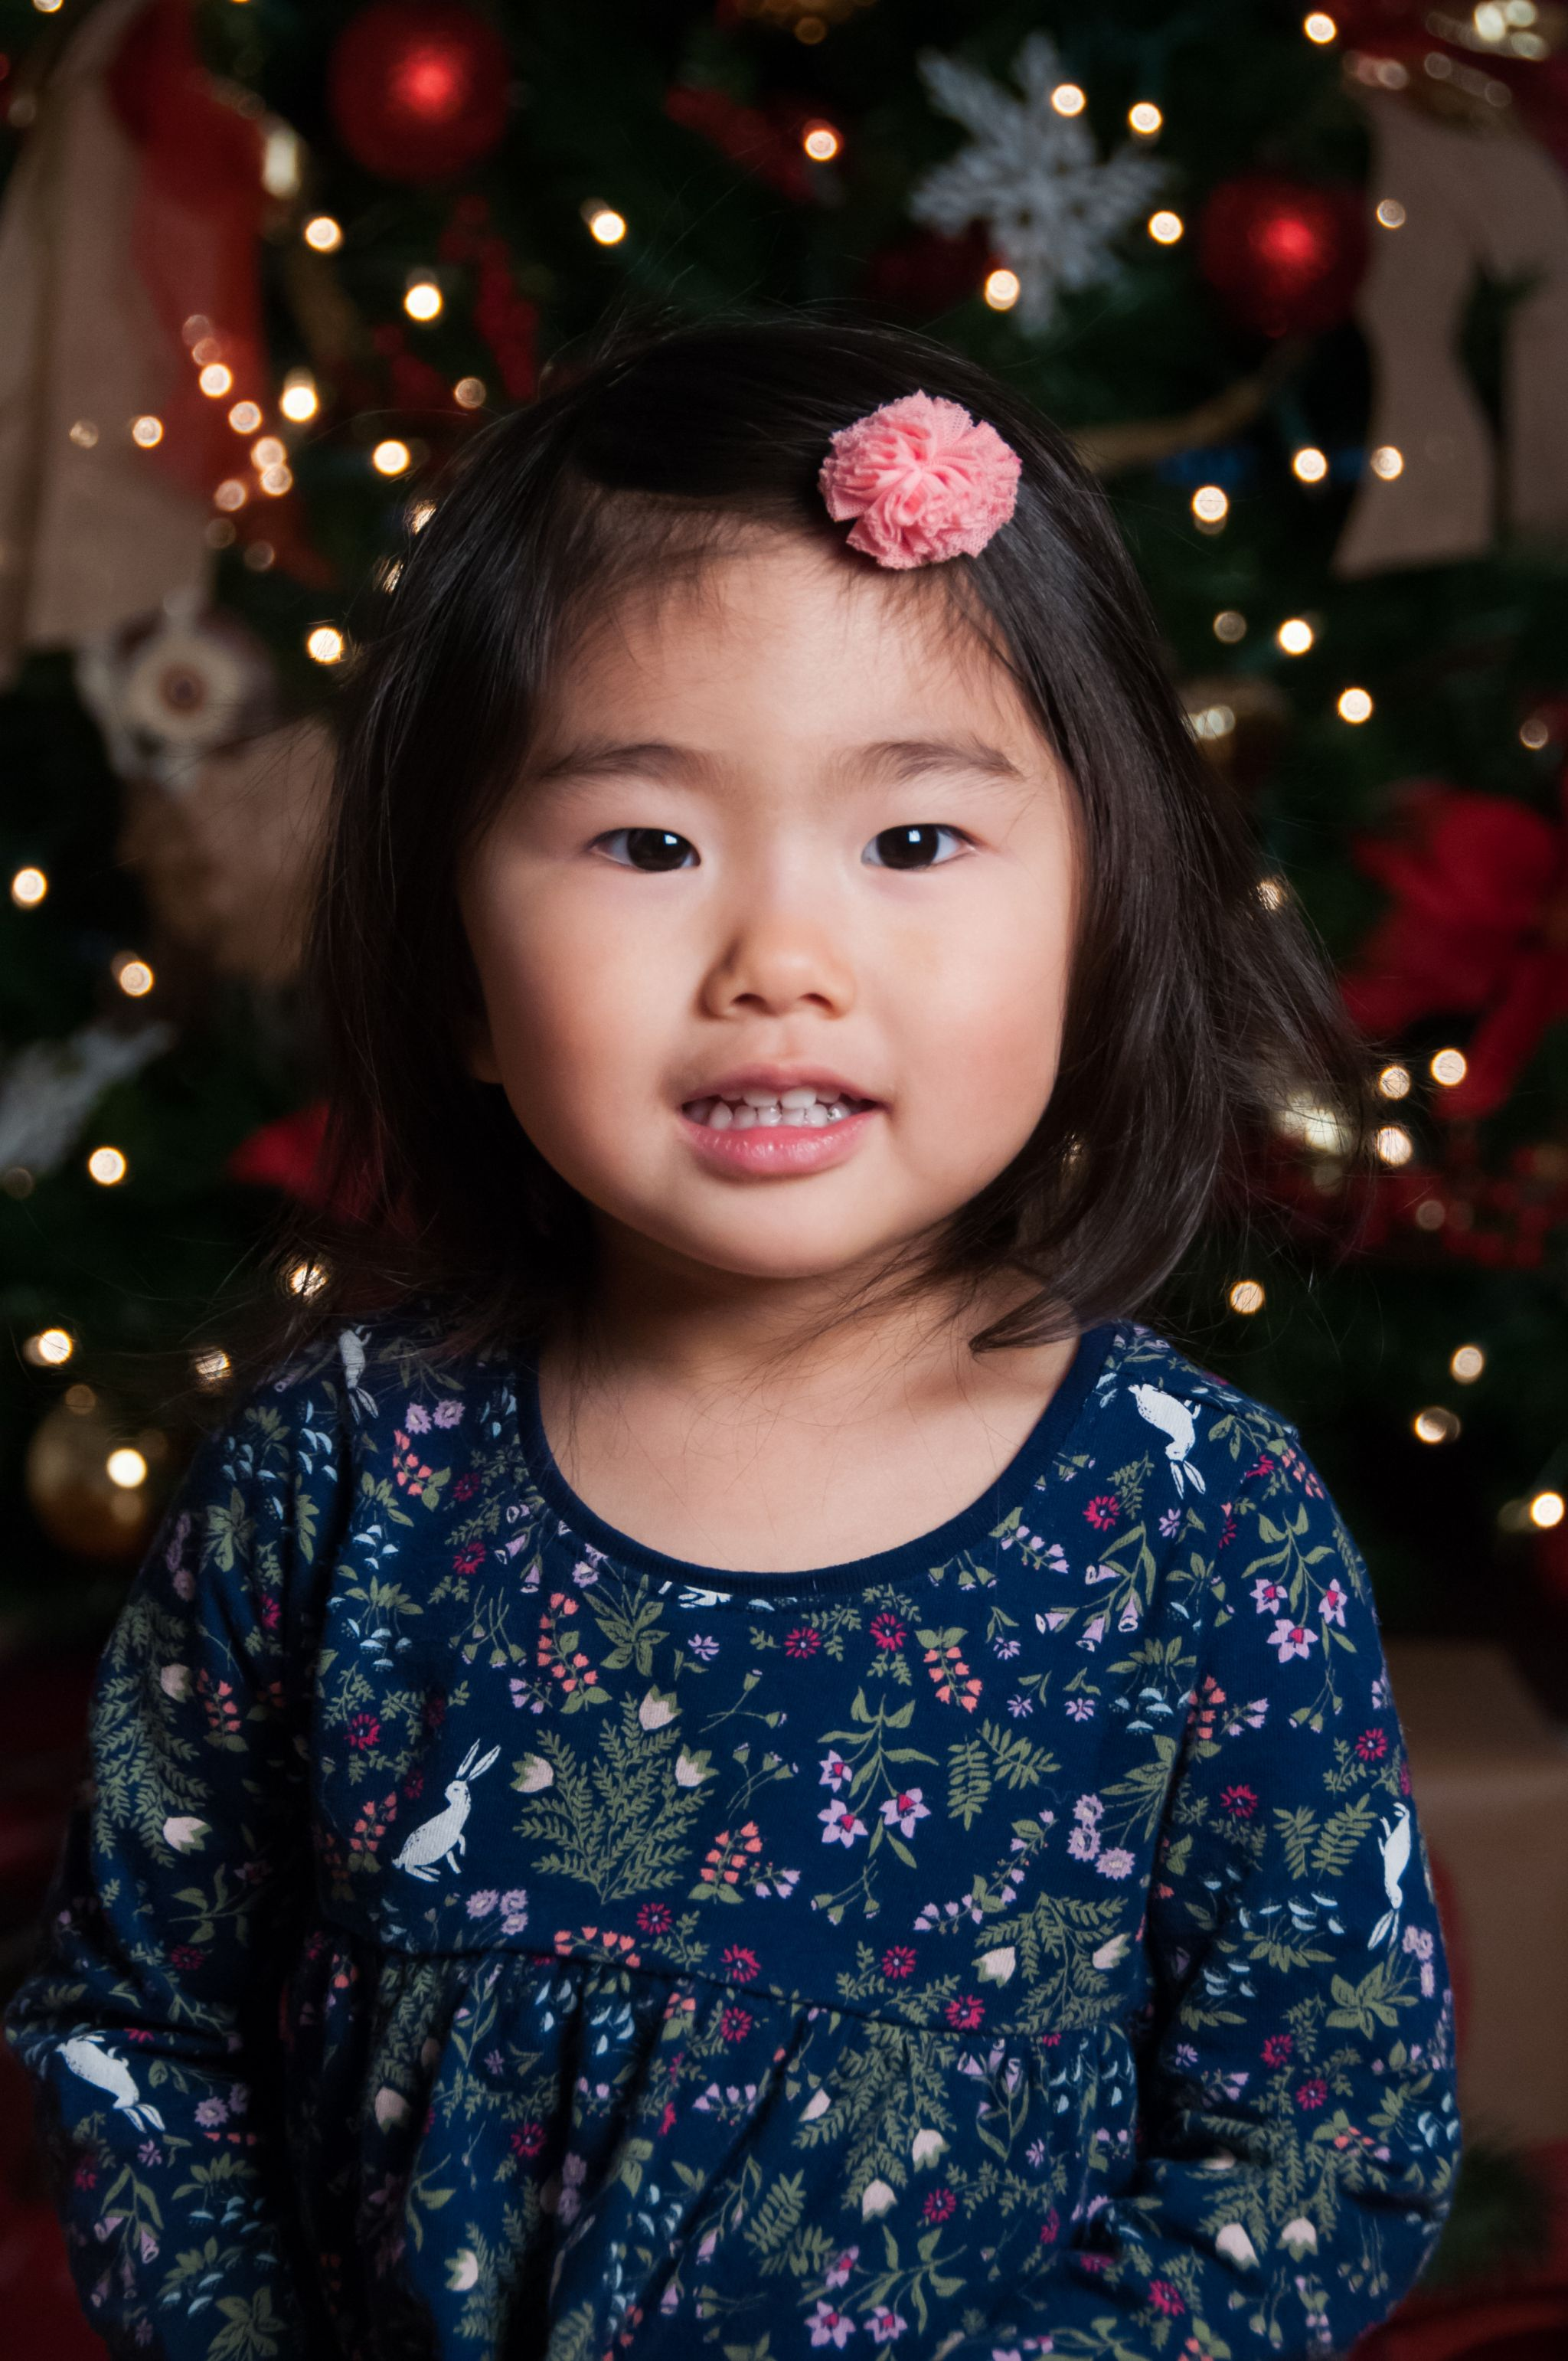 young girl in blue by Christmas tree, South Lyon Holiday Photographer, Christmas Mini Sessions